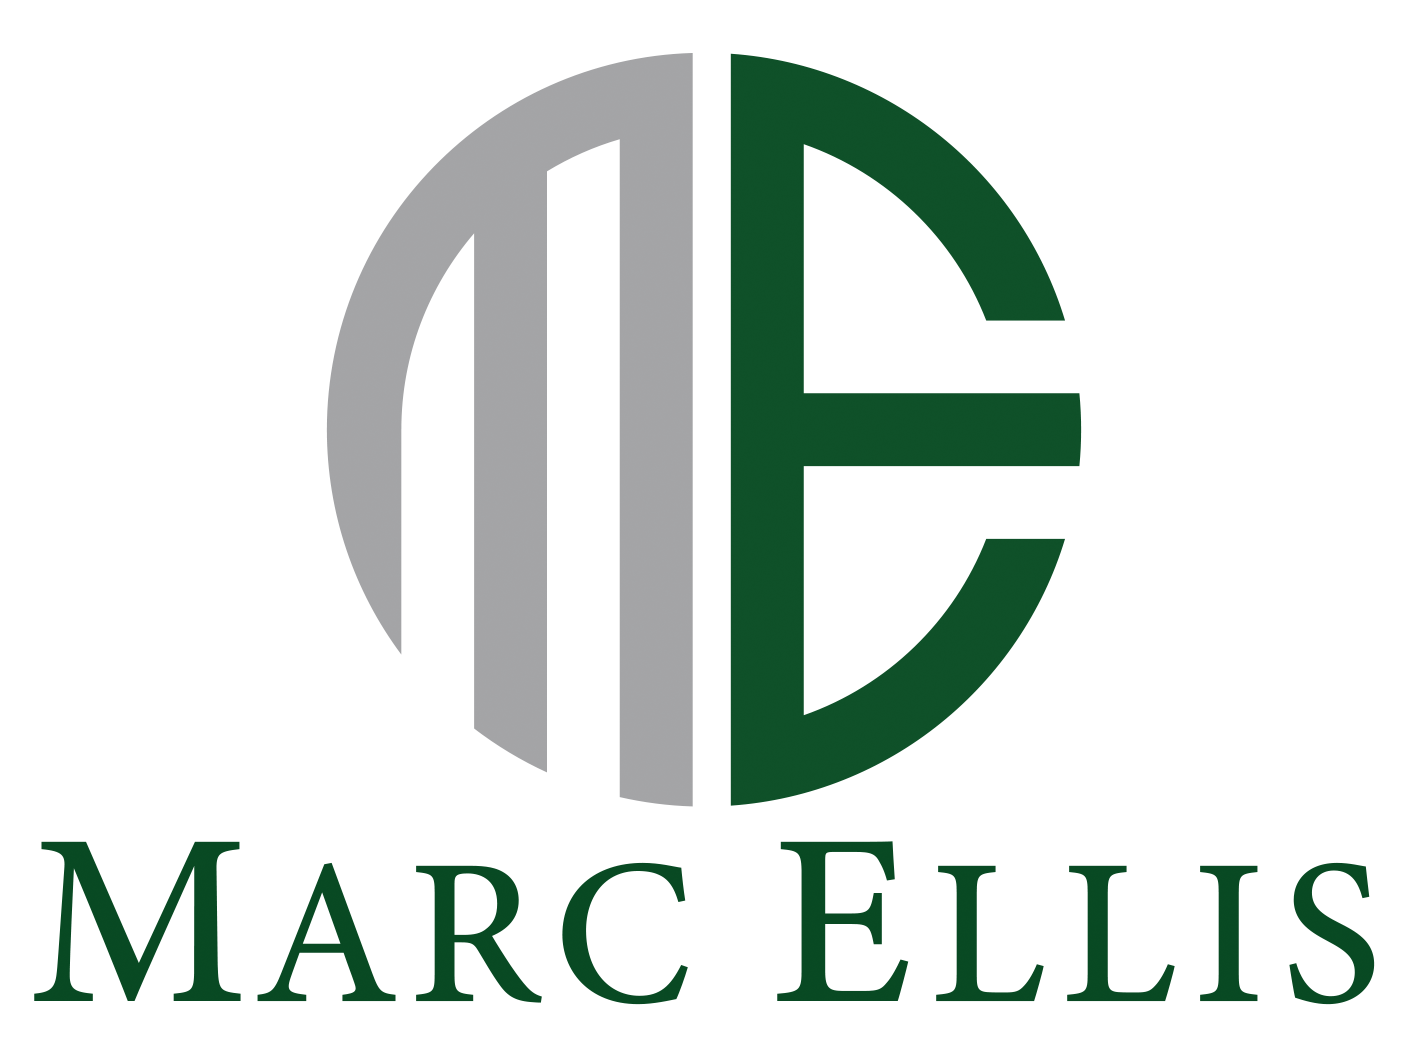 cropped-MEC-LOGO-FOR-PRINT-seethrough.png